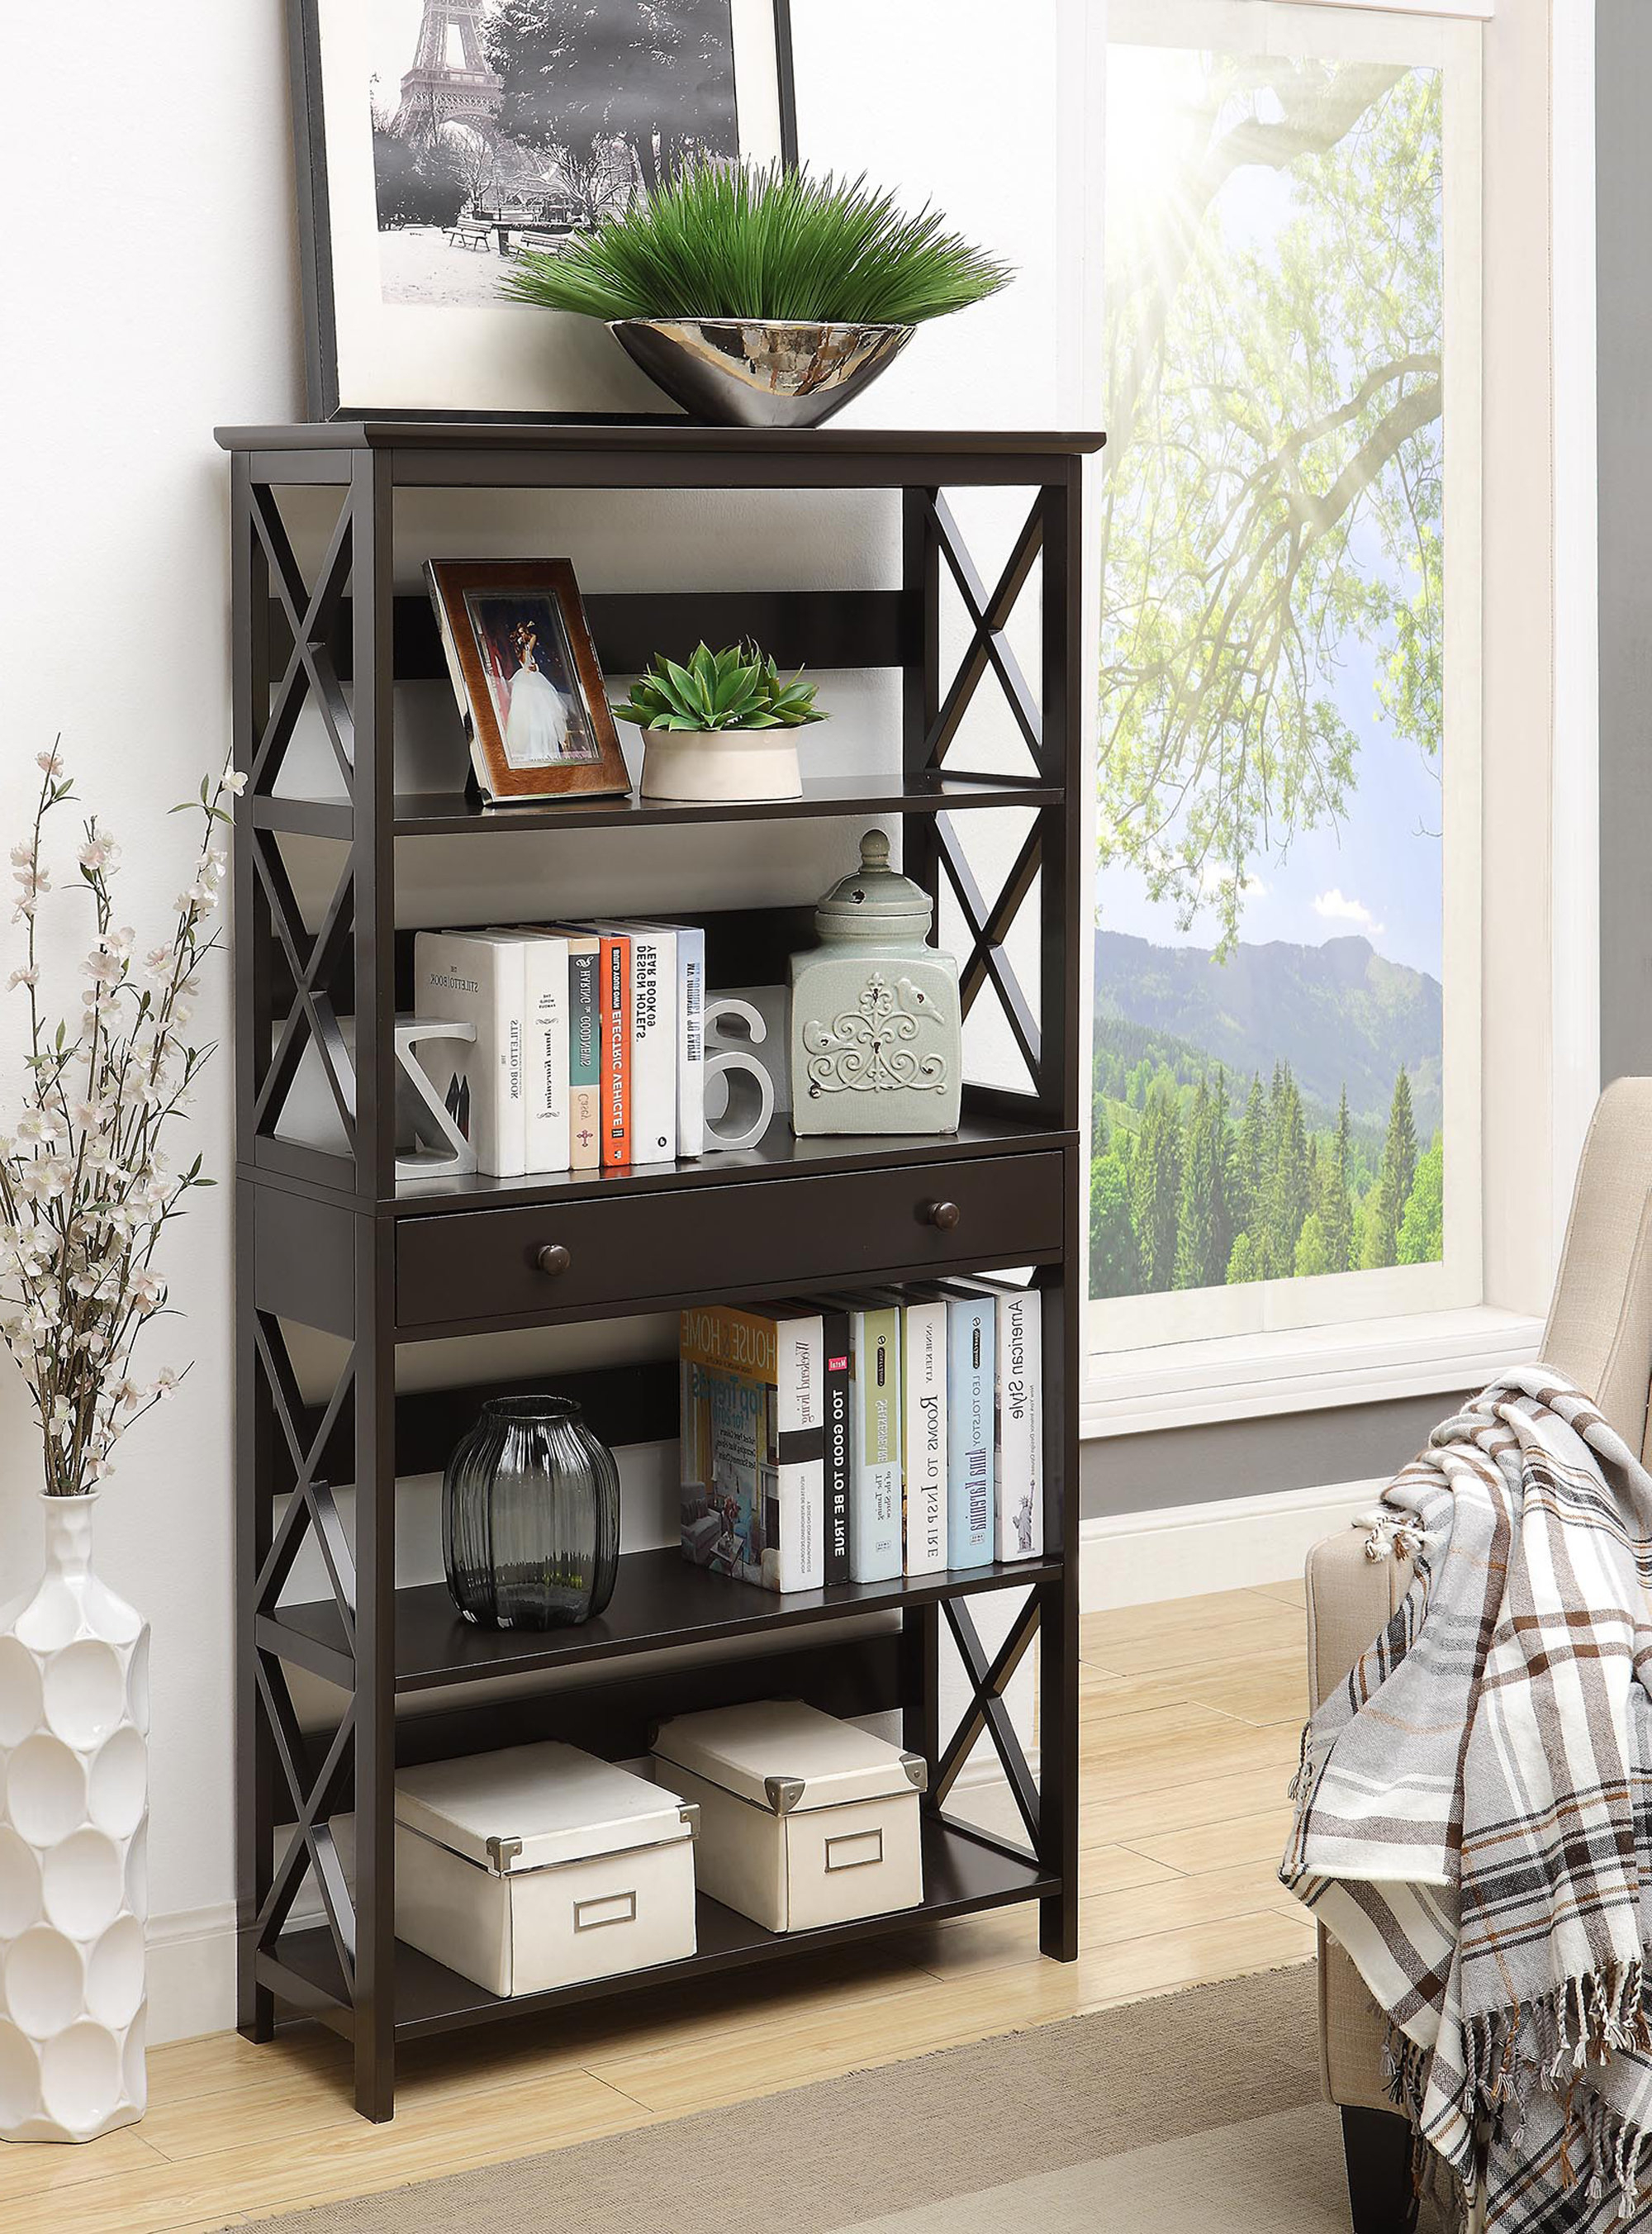 Gracelynn 5 Tier Etagere Bookcases Intended For Best And Newest Gracelynn 5 Tier Etagere Bookcase (View 5 of 20)